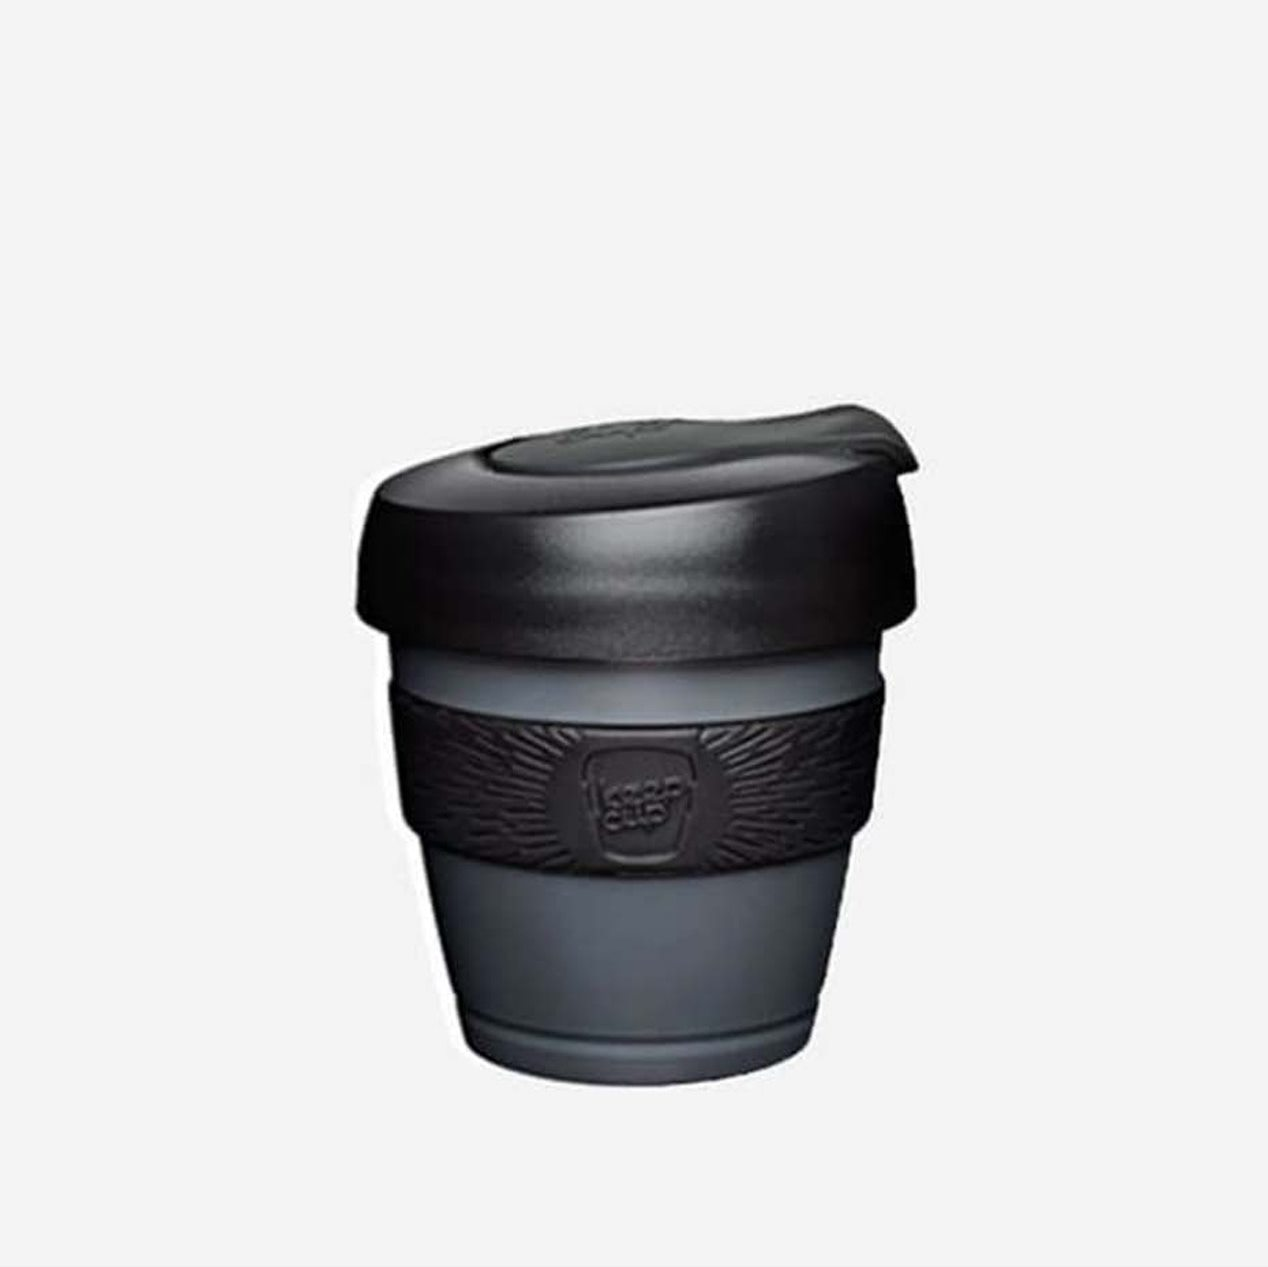 KeepCup Original 4oz Ristretto